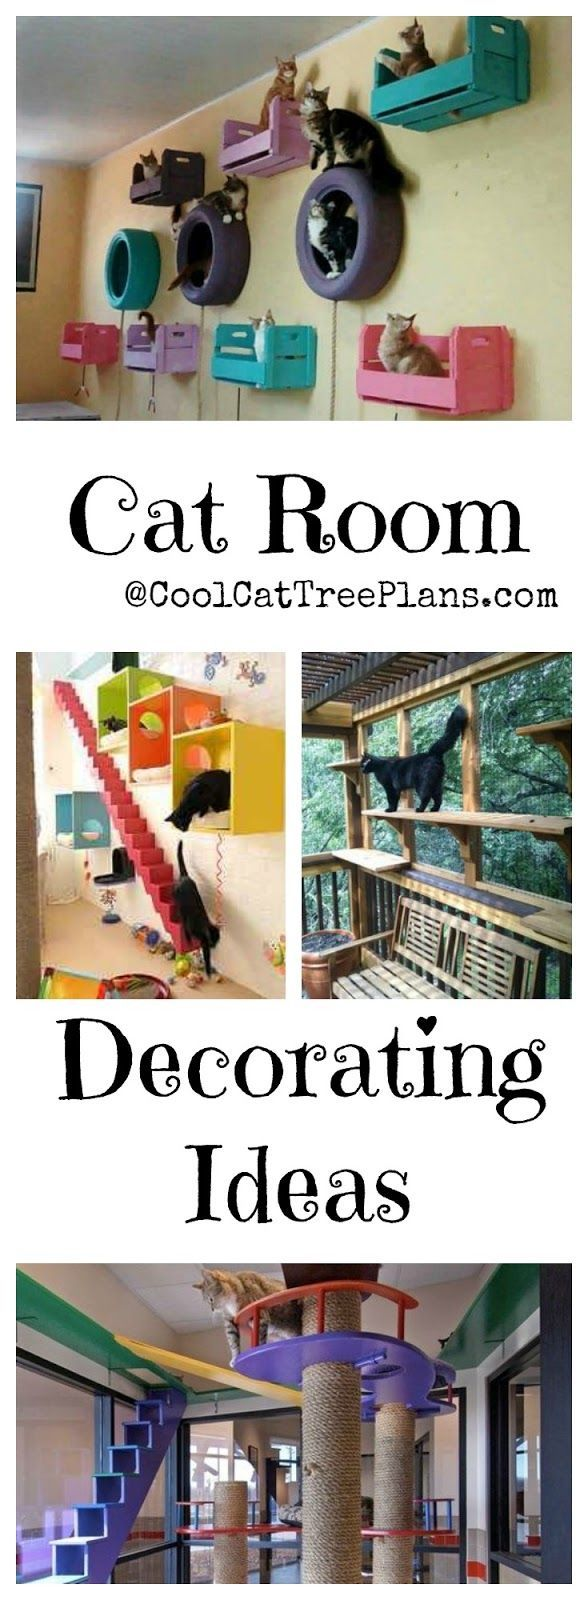 Cat Room Ideas Jede Crazy Cat Lady will ihre Hände auf #apartmentdiy